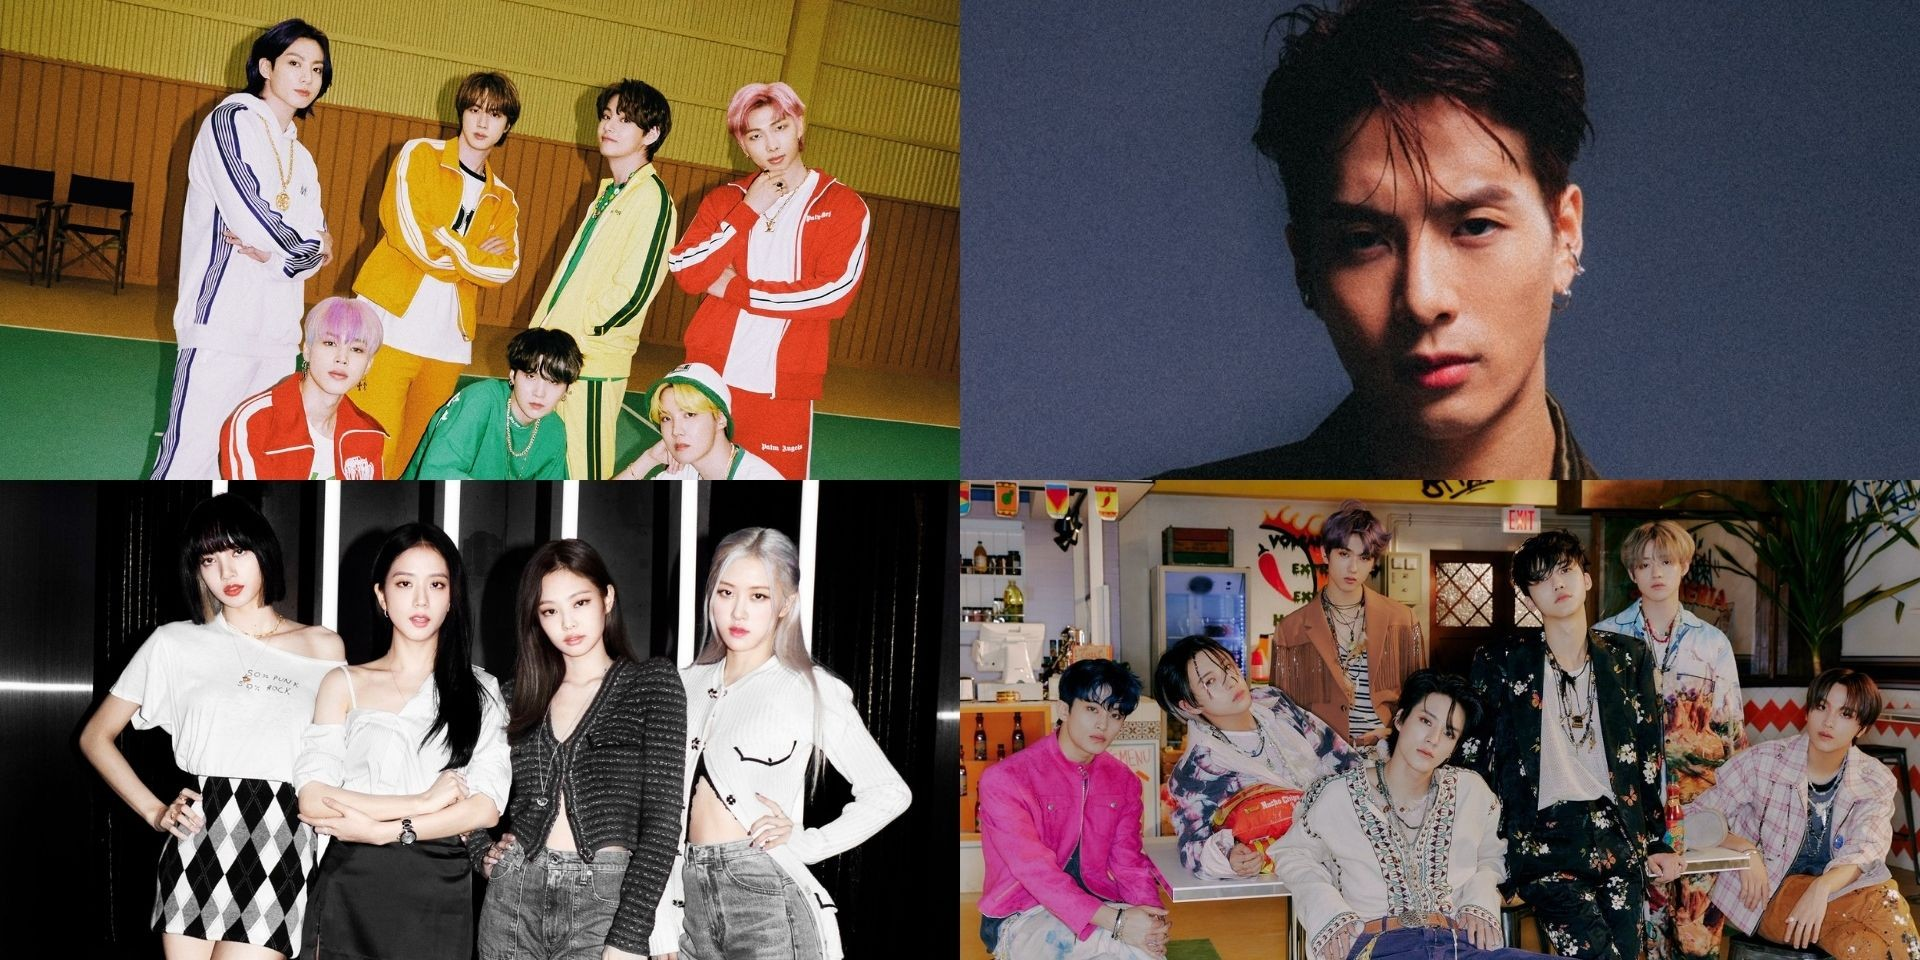 Relive K-pop history with these first tweets from some of your favourite acts — BTS, Jackson Wang, BLACKPINK, NCT DREAM, and more